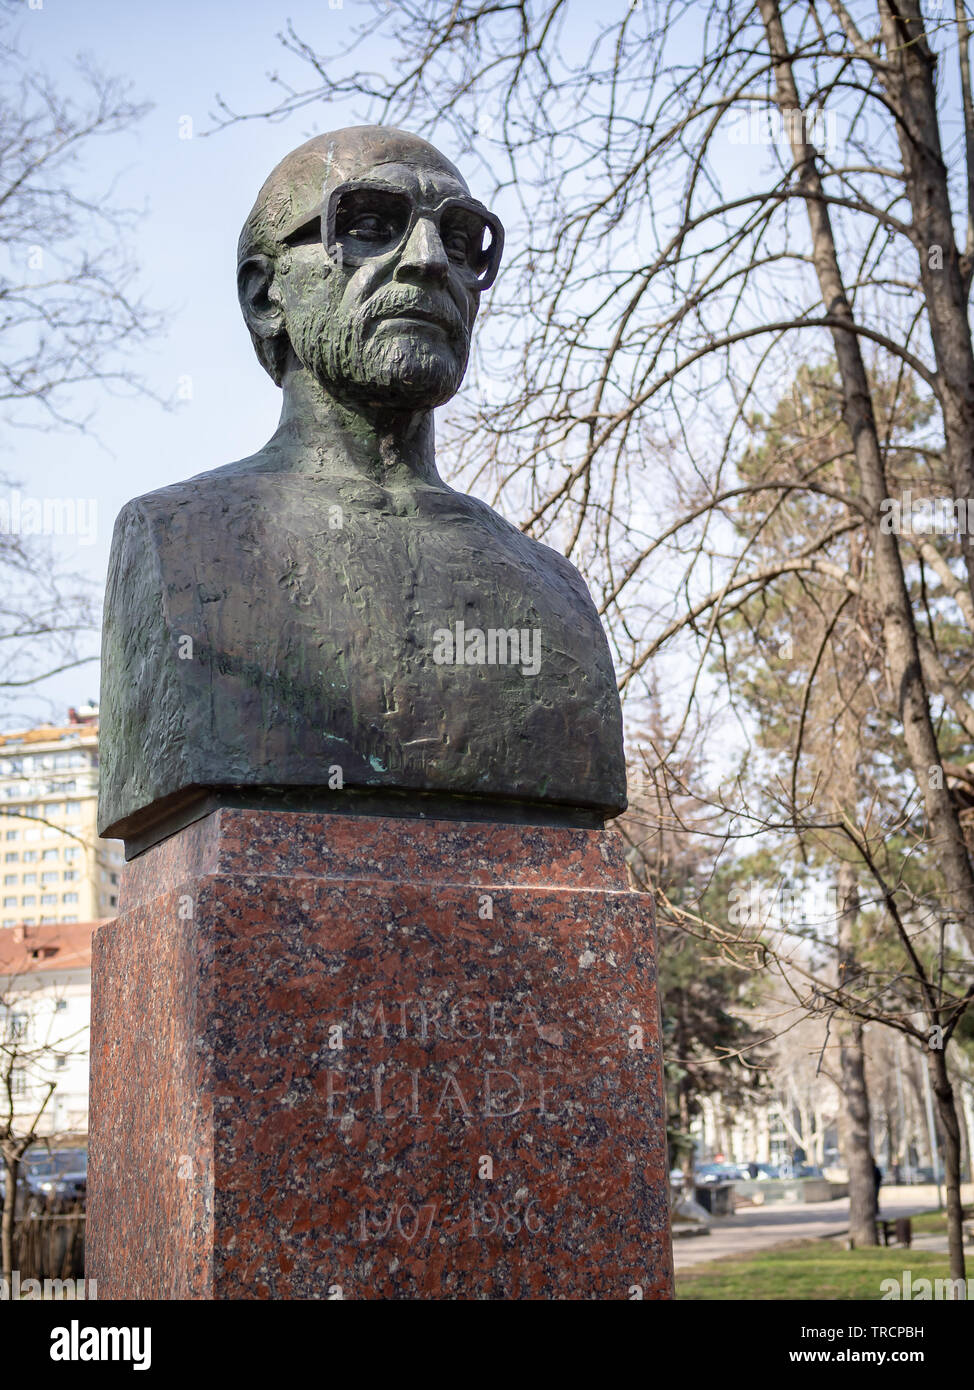 CHISINAU, MOLDOVA-MARCH 21, 2019: Mircea Eliade bust by Vasile Golea in the Alley of Classics - Stock Image